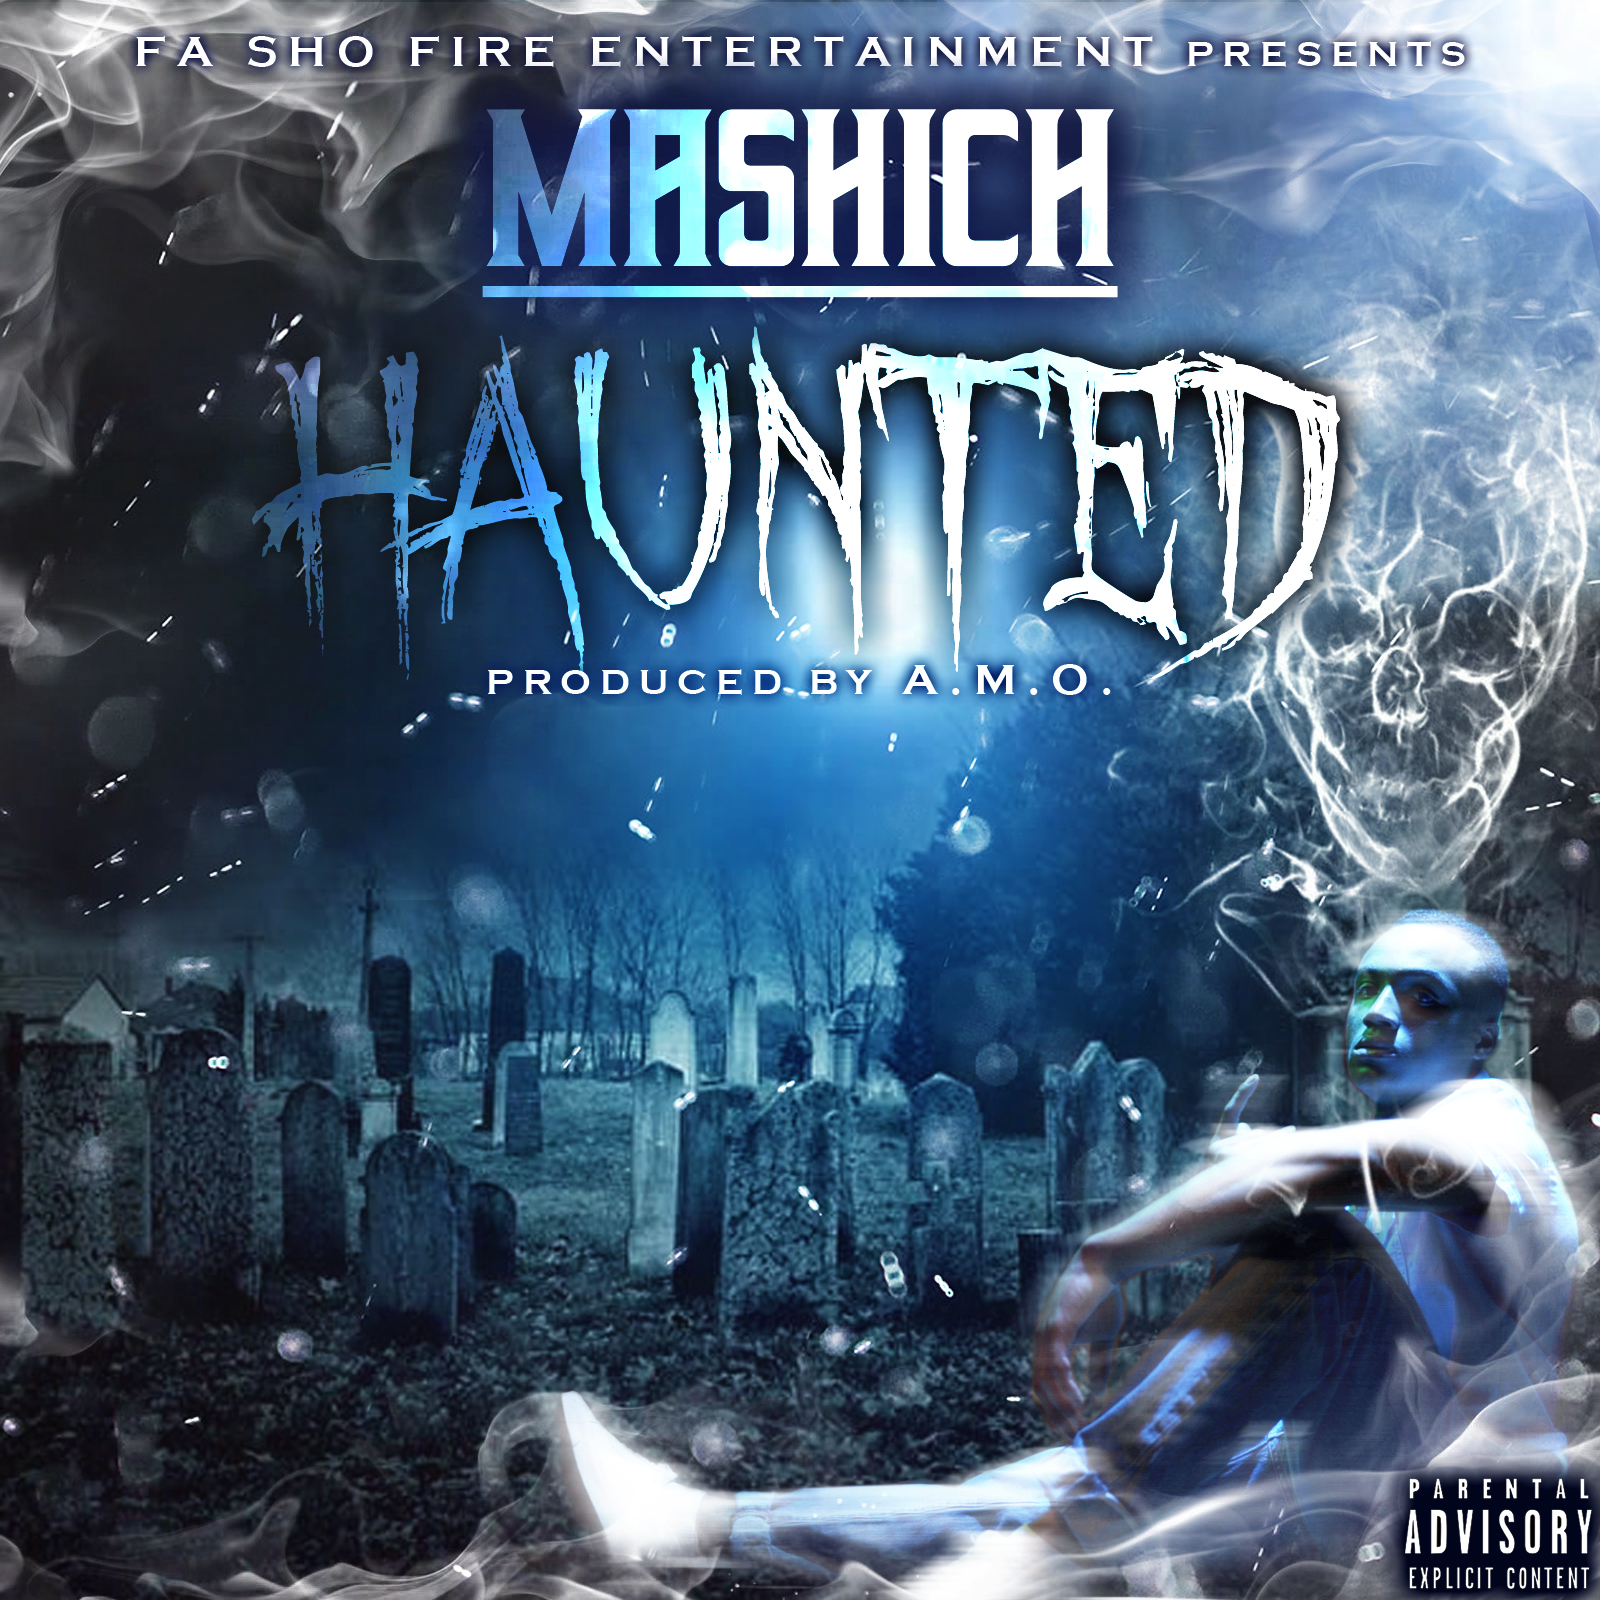 Mashich Haunted for Music Monday